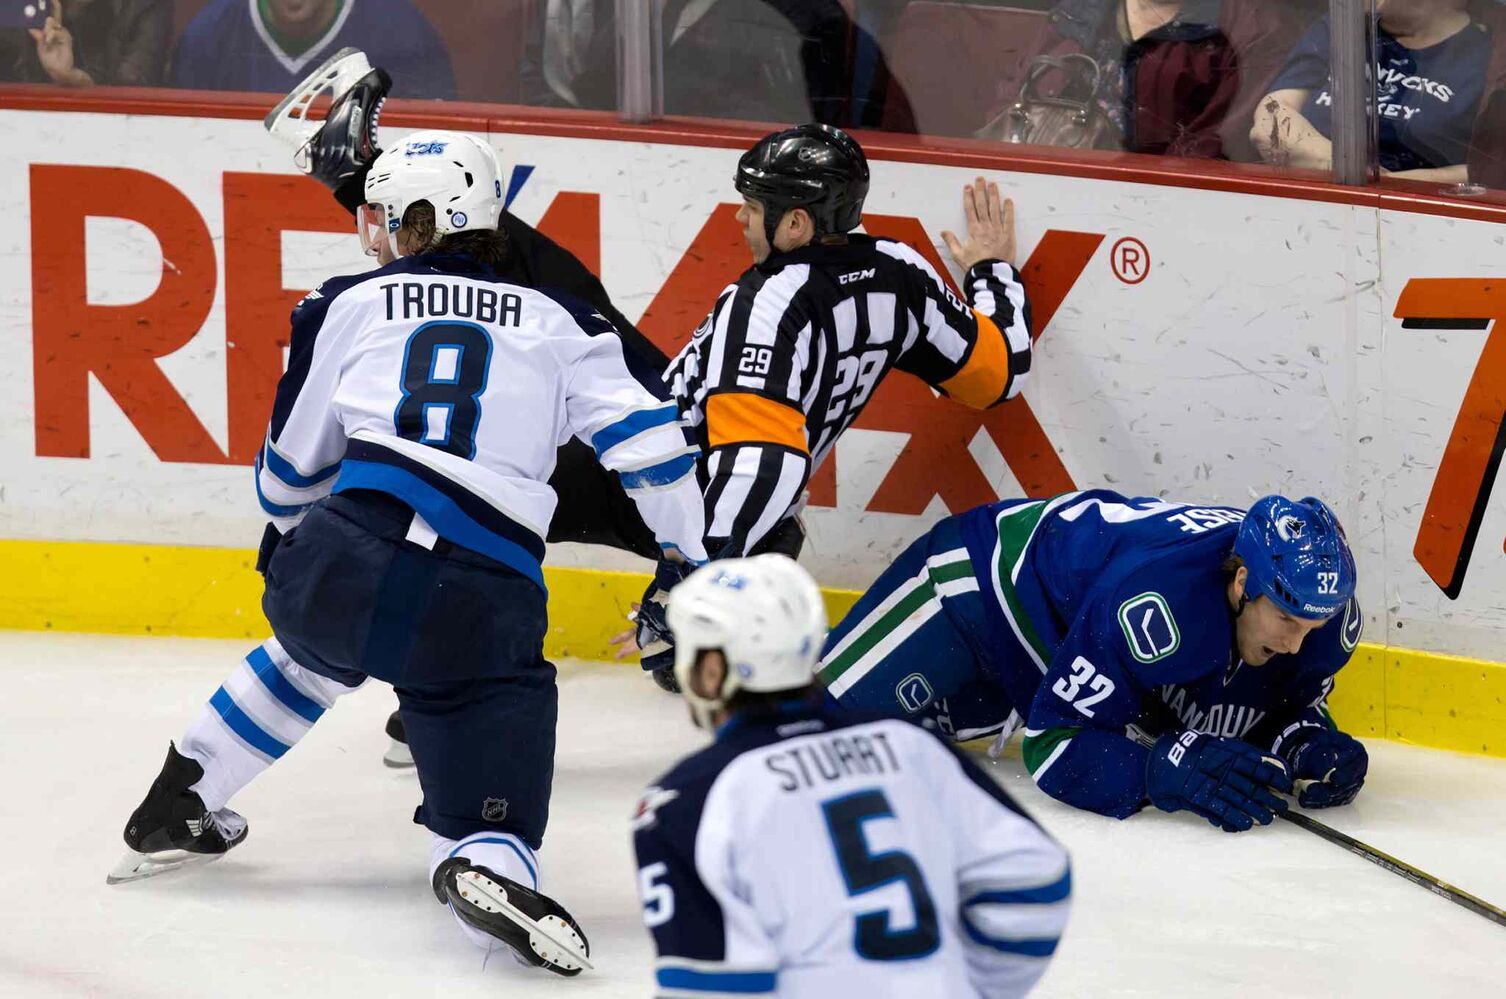 Referee Ian Walsh (centre) is knocked to the ice after Winnipeg Jets defenceman Jacob Trouba (left) and Vancouver Canucks' Dale Weise collided during the second period. (DARRYL DYCK / THE CANADIAN PRESS)